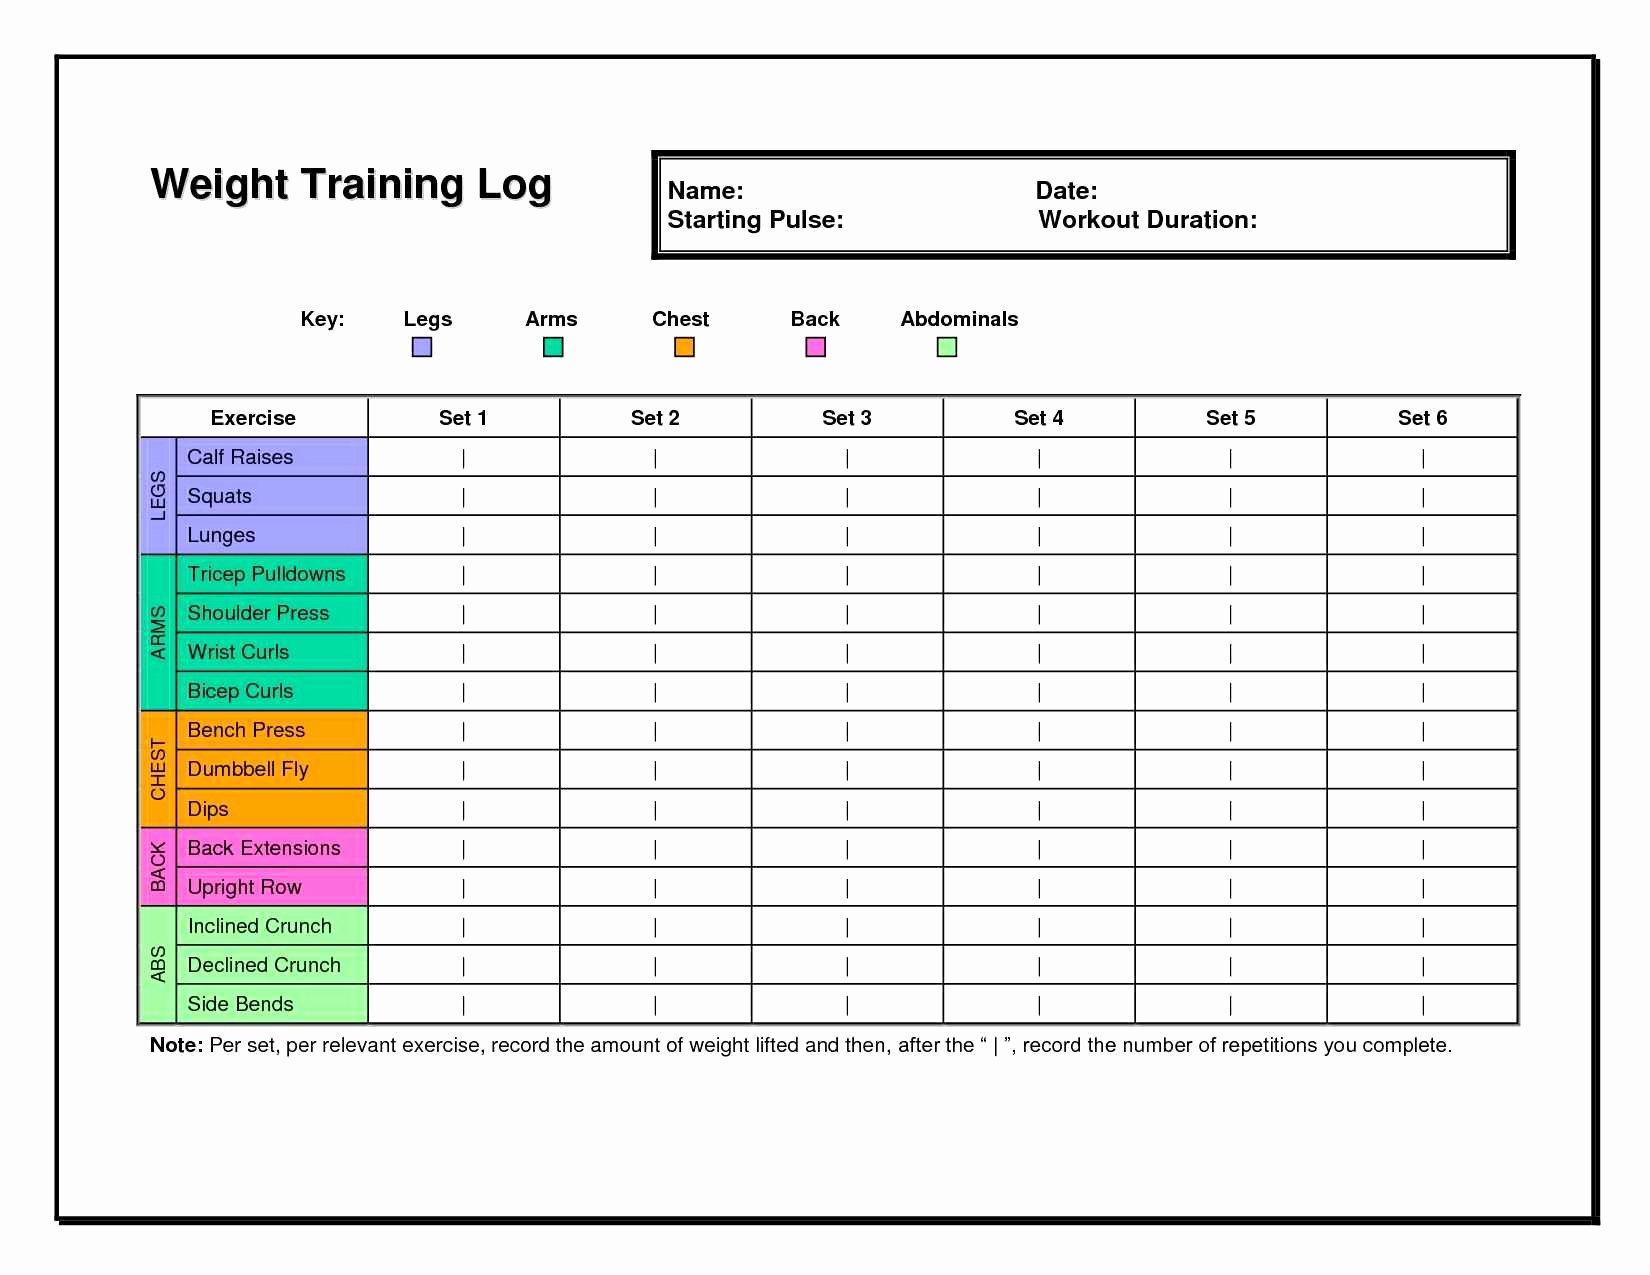 Employee Training Record Template Excel Awesome Employee Training Log Template Excel – Spreadsheet Collections